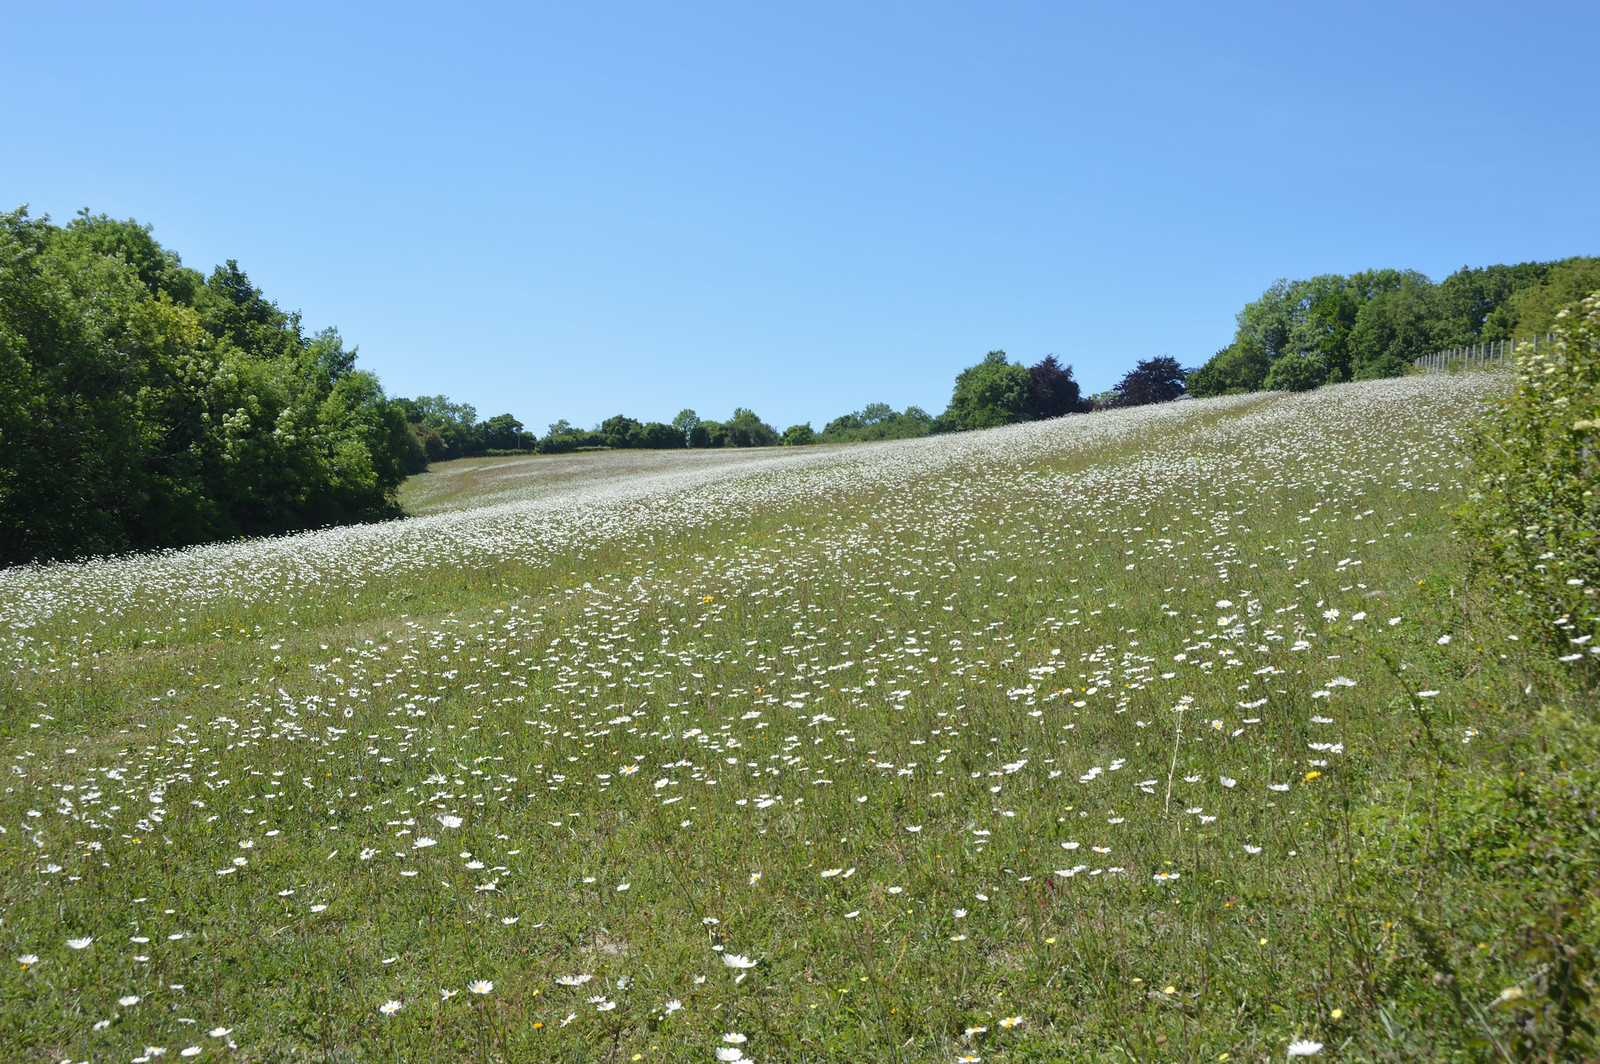 Shoreham Dalhanna field of Oxeye daisies